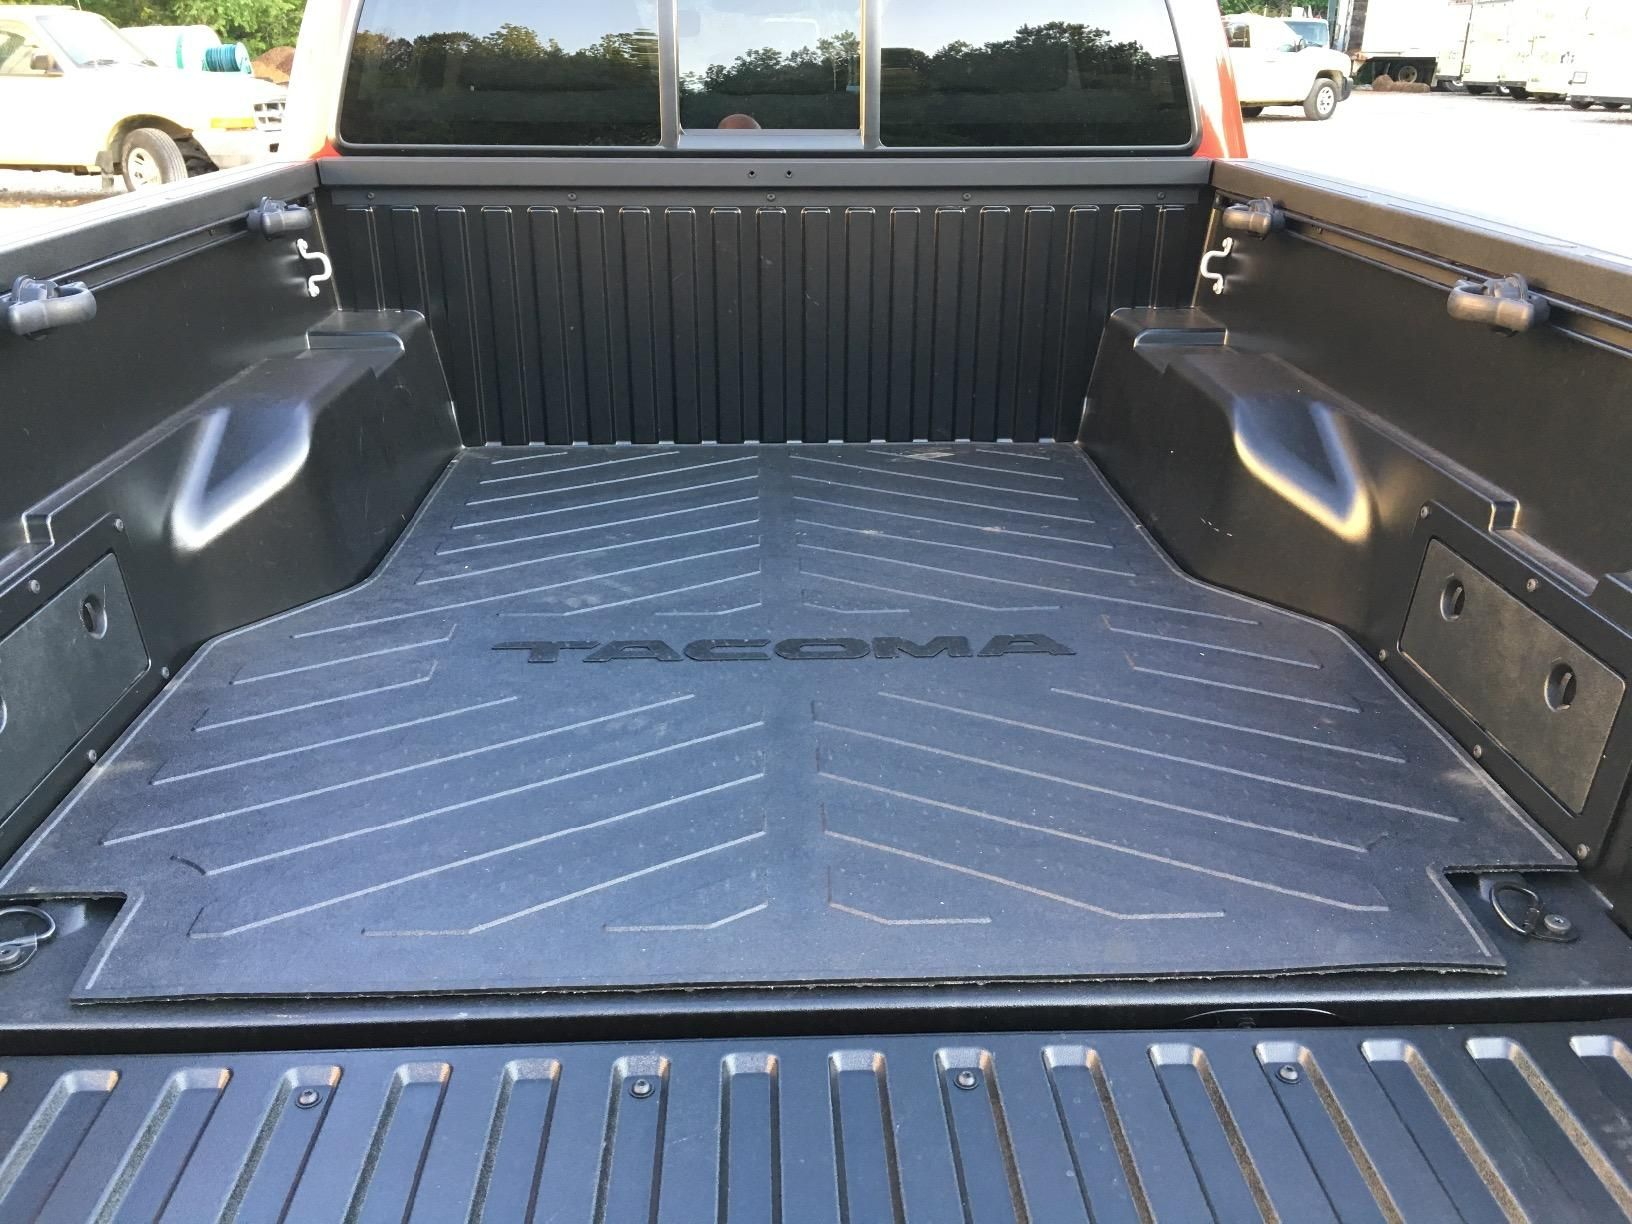 tacoma short bed mat 05 20 in 2020 toyota accessories tacoma accessories tacoma pinterest